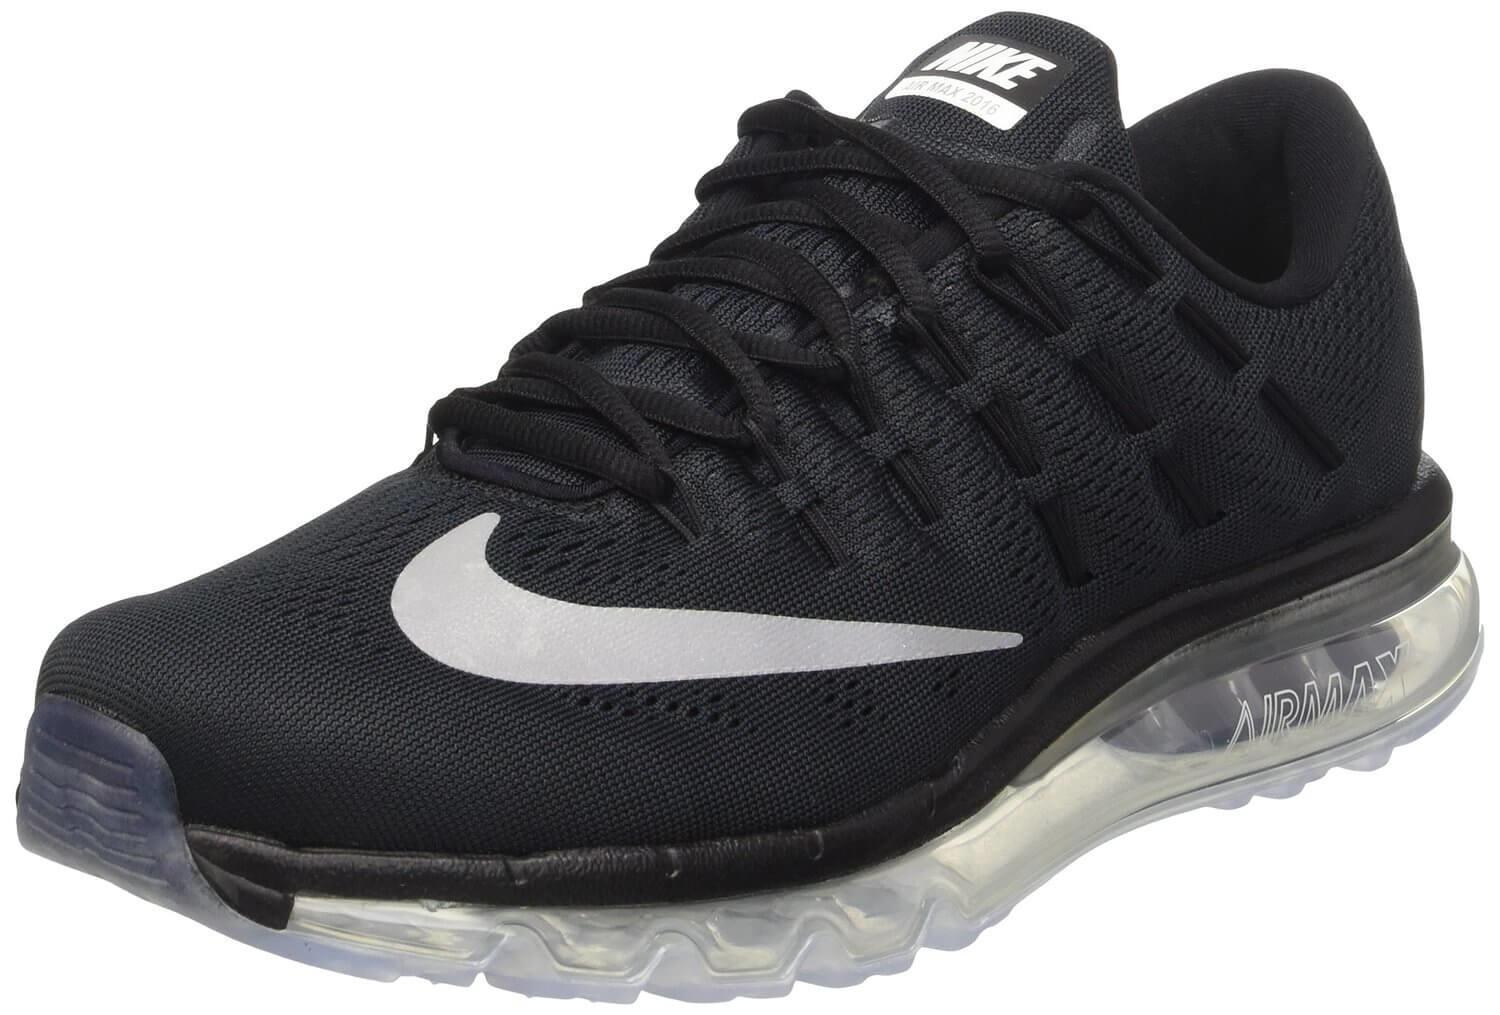 moins cher 43df3 8c24c Nike Air Max 2016 Reviewed & Rated for Quality